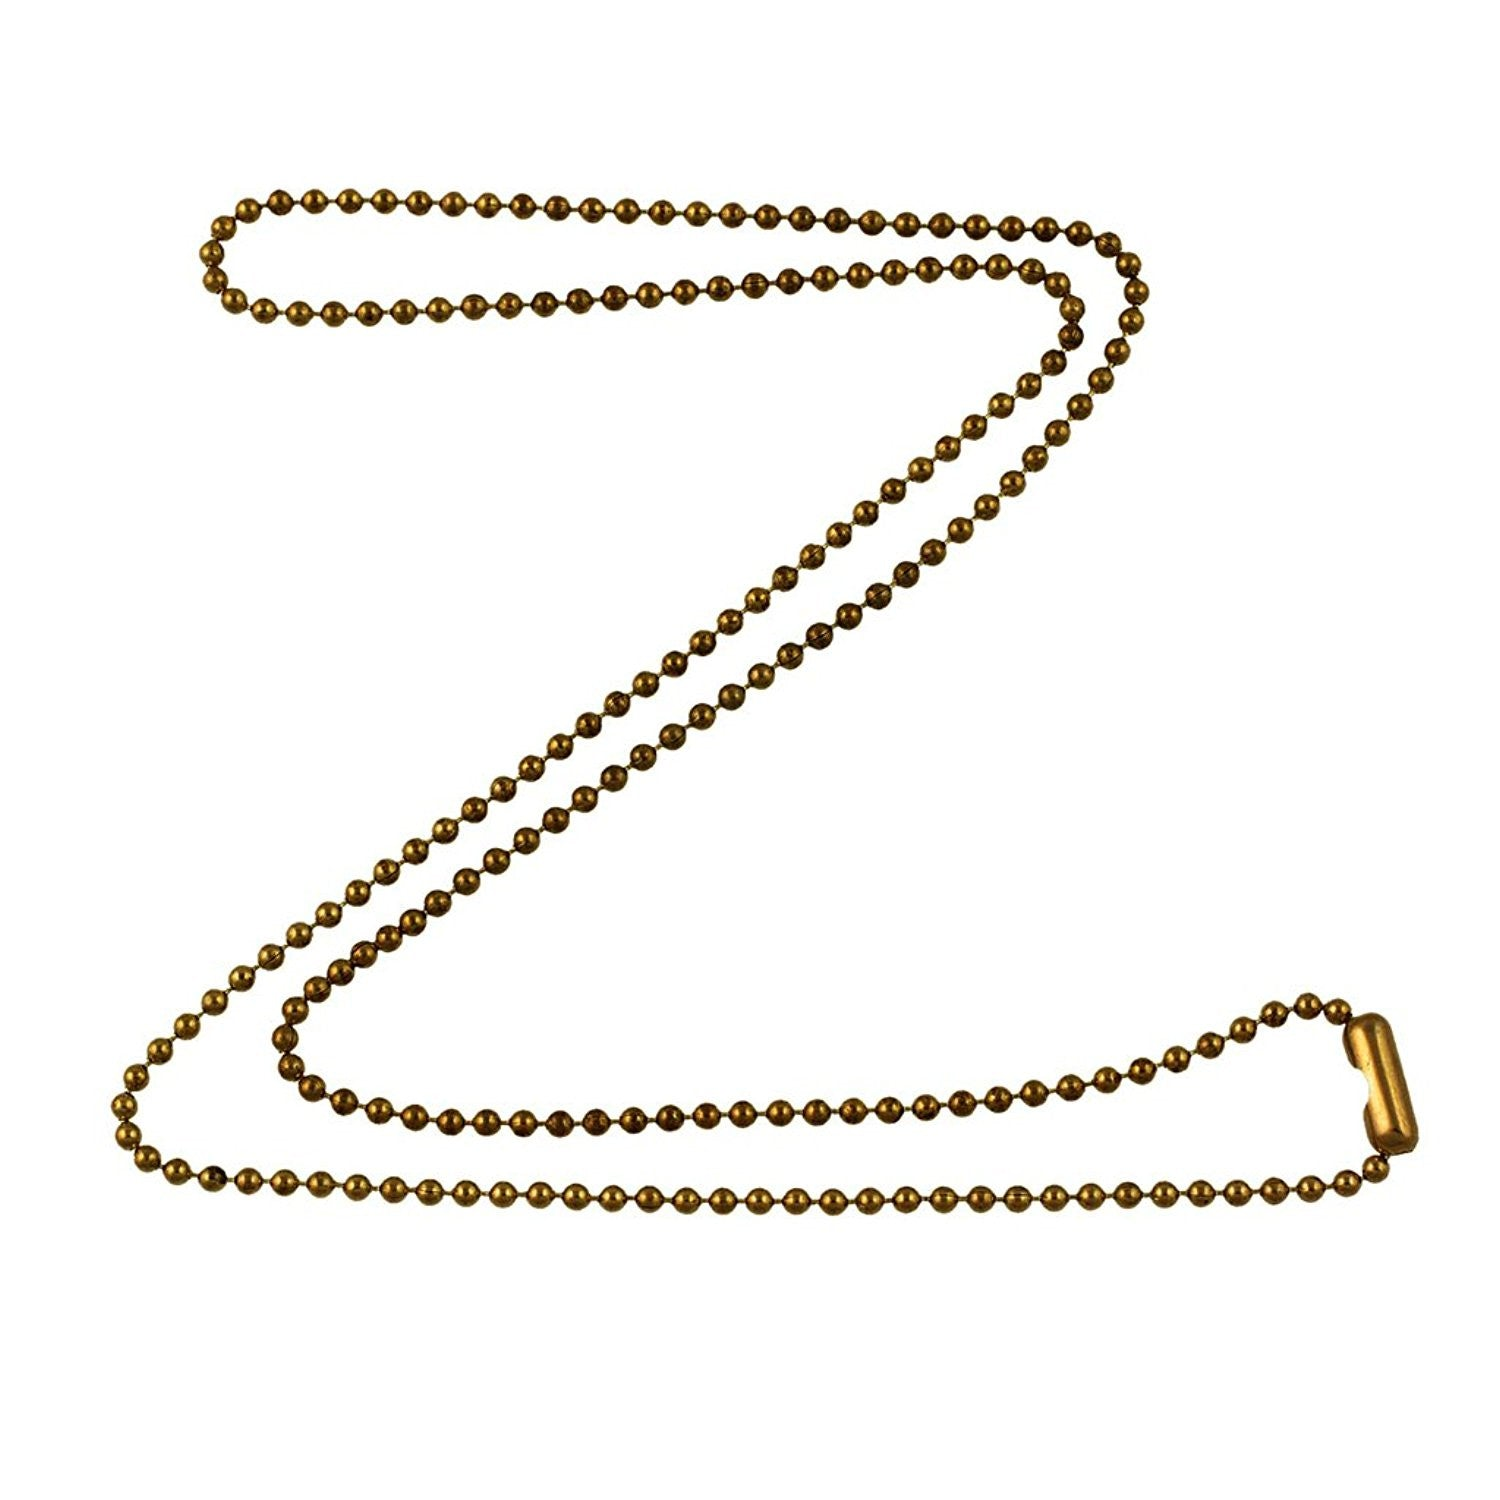 1 8mm fine antique brass ball chain necklace with extra durable